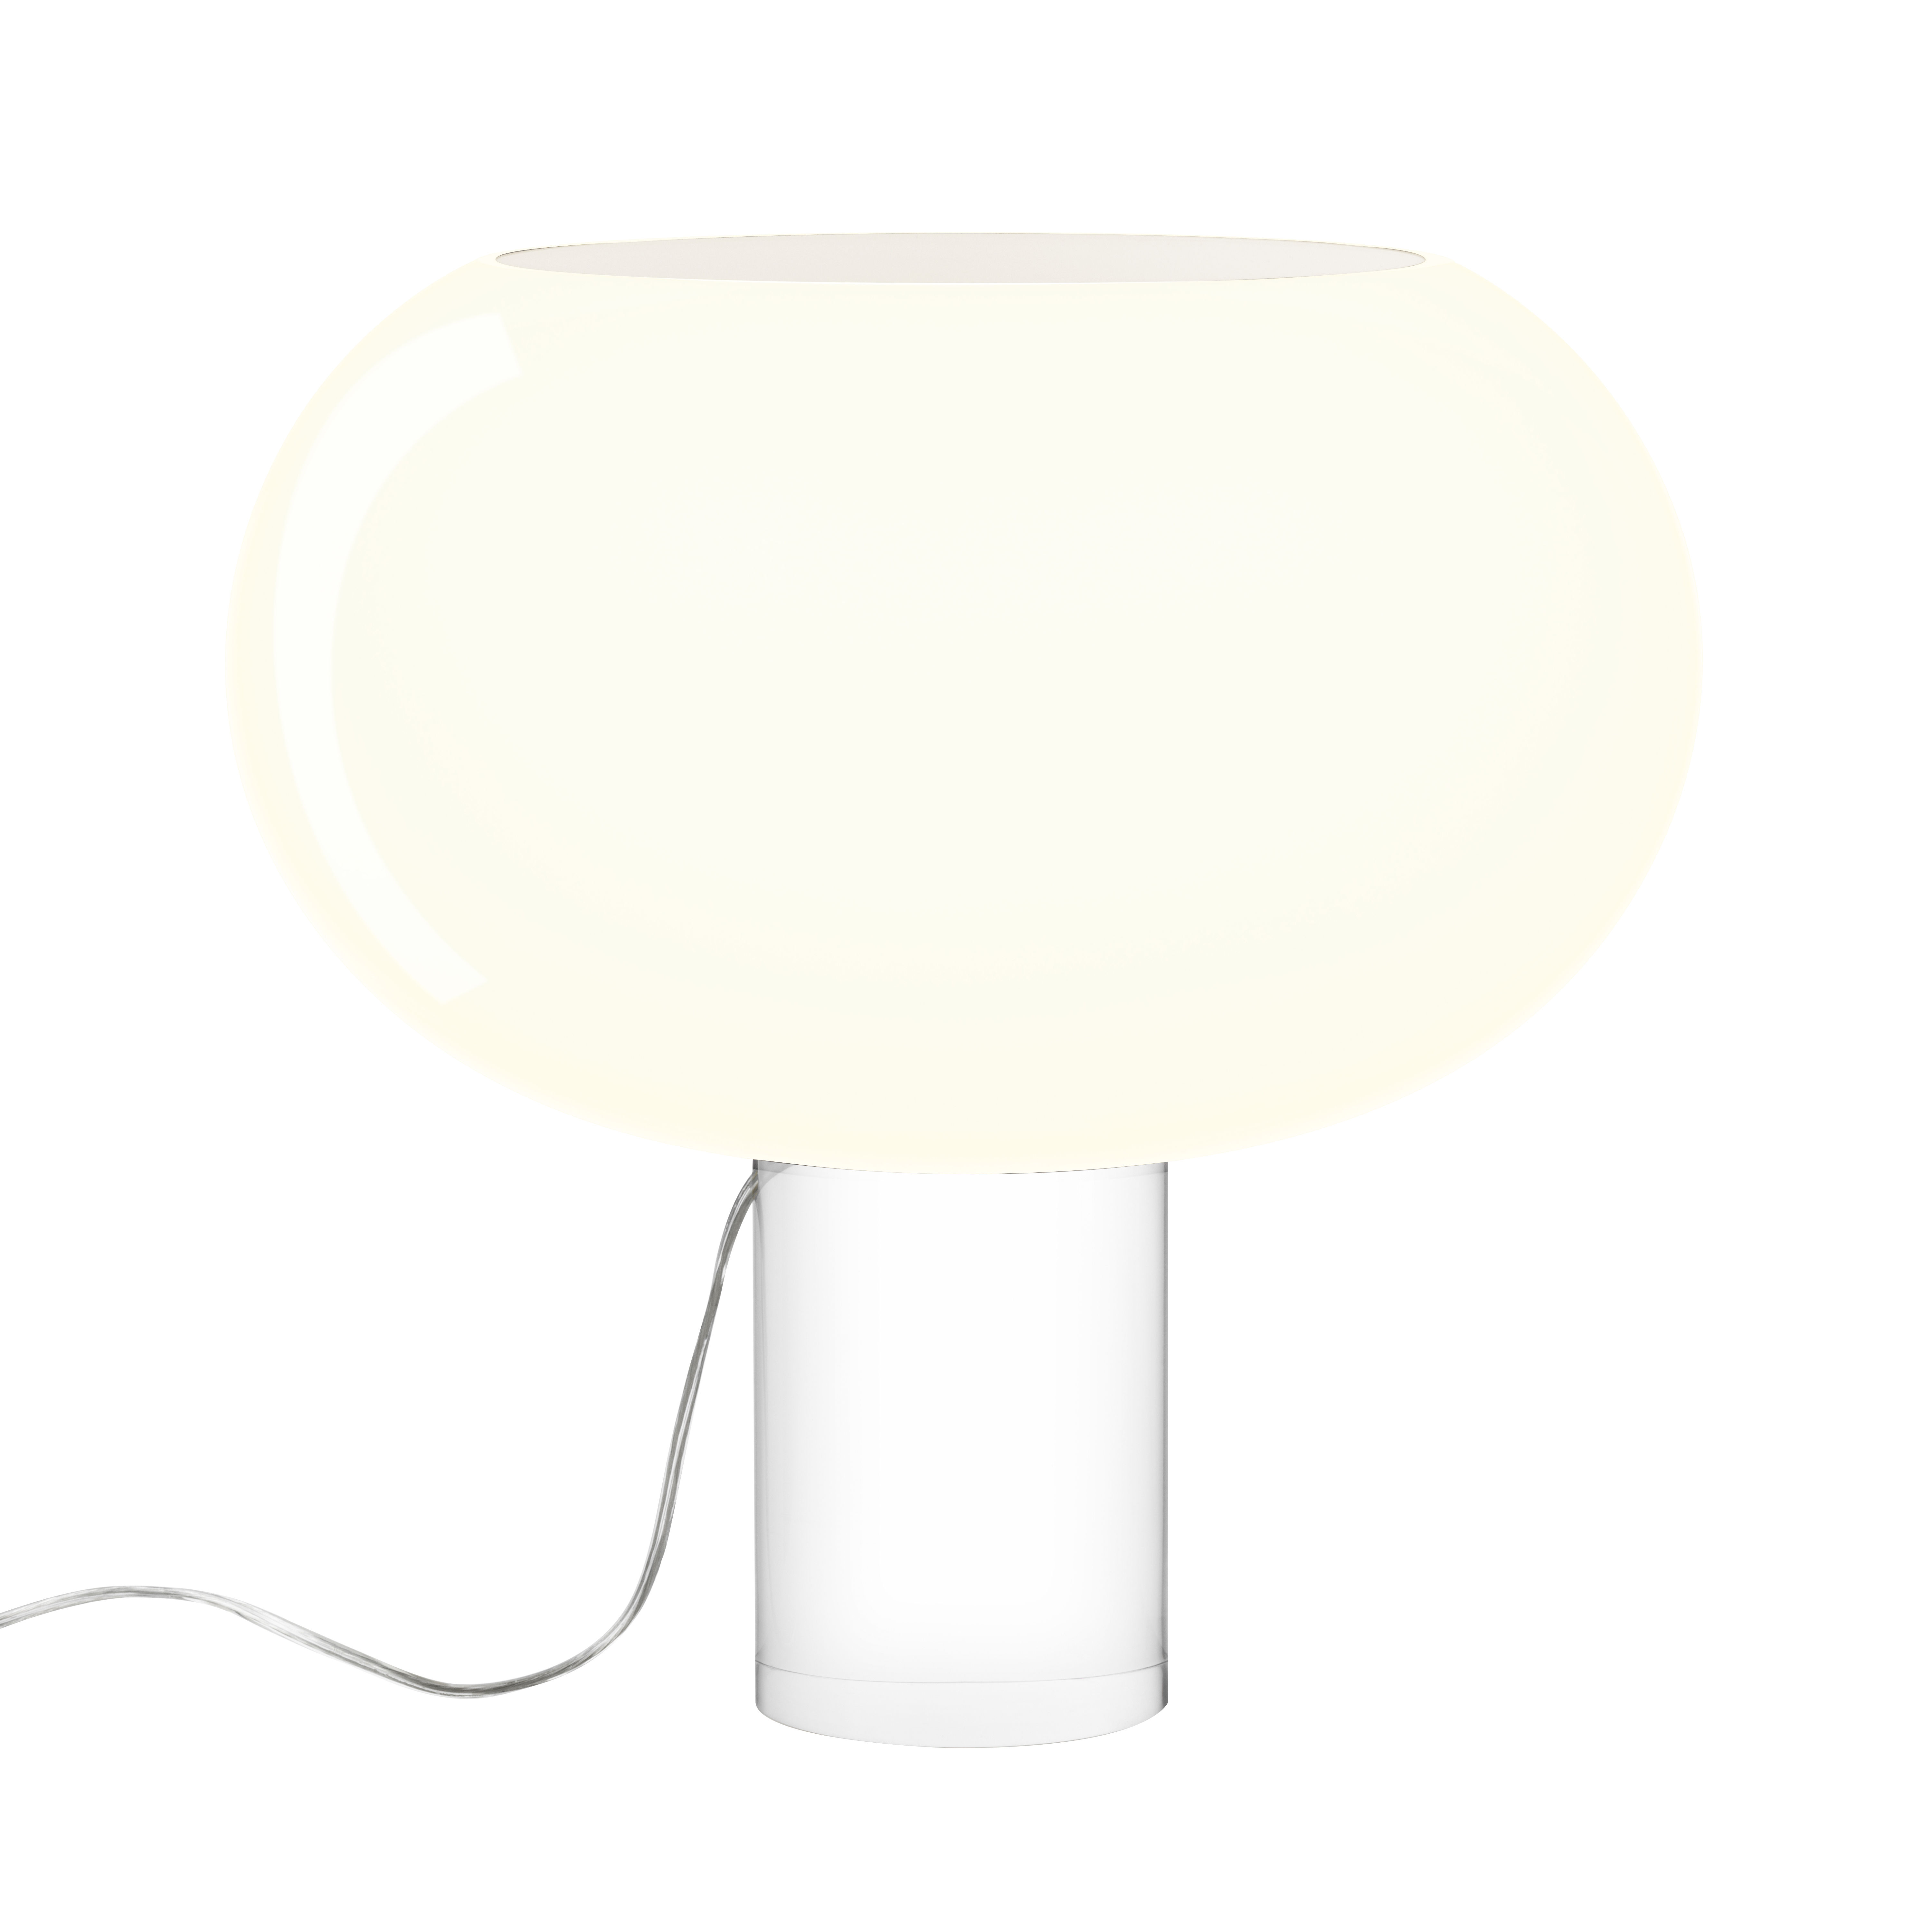 Lighting - Table Lamps - Buds 2 Table lamp - Artisanal glass / Ø 41 x H 42 cm by Foscarini - White / Transparent base - Blown glass, PMMA